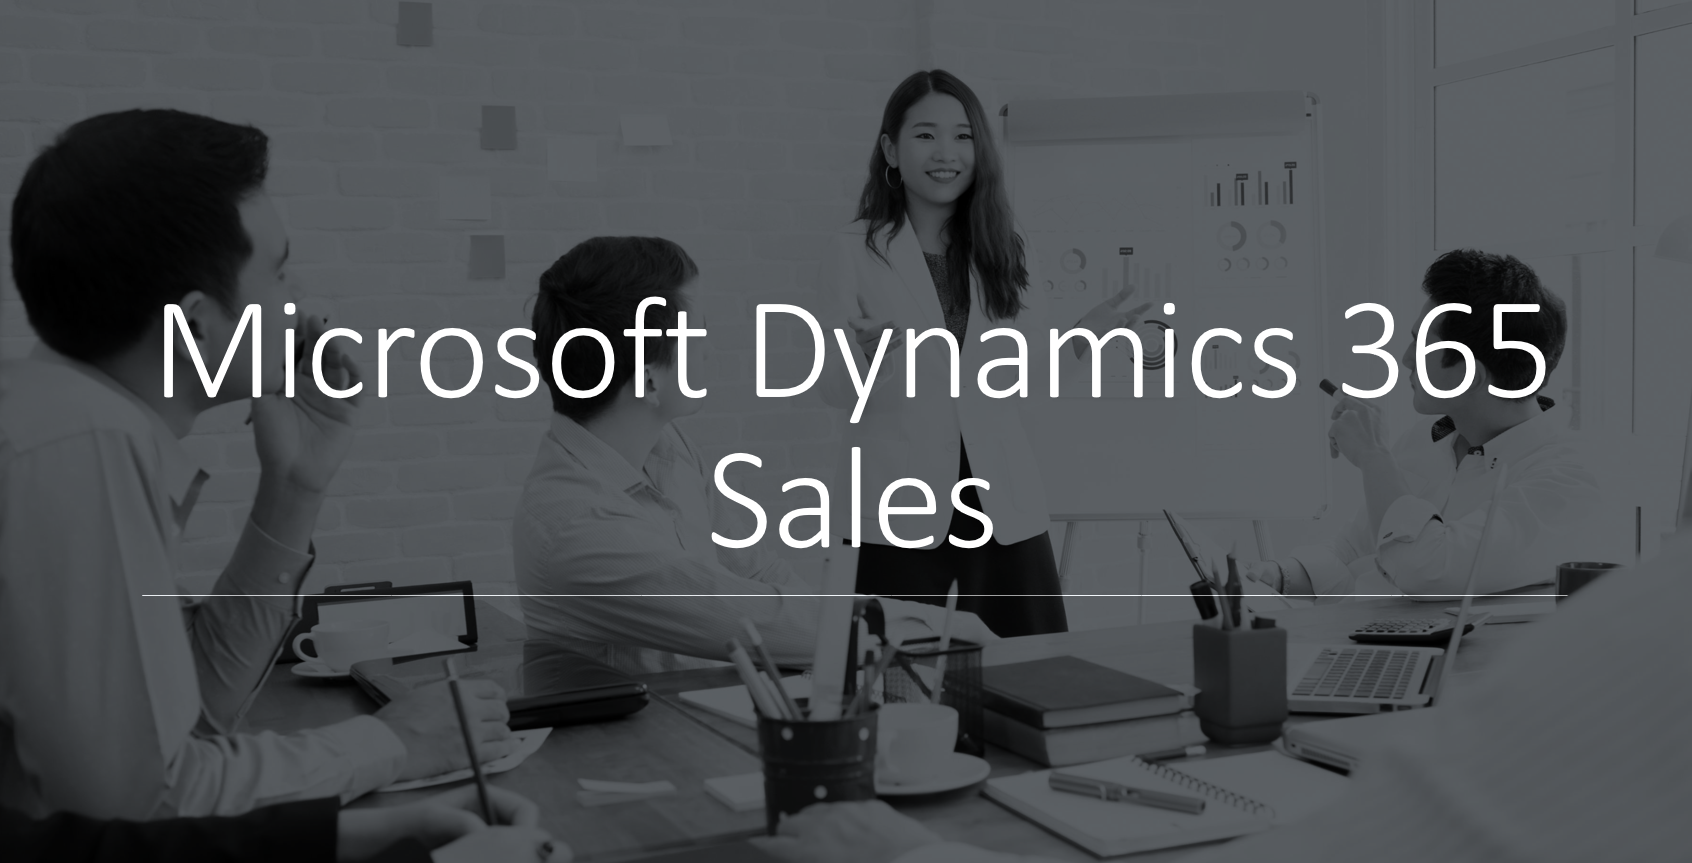 What is Dynamics 365 for Sales?